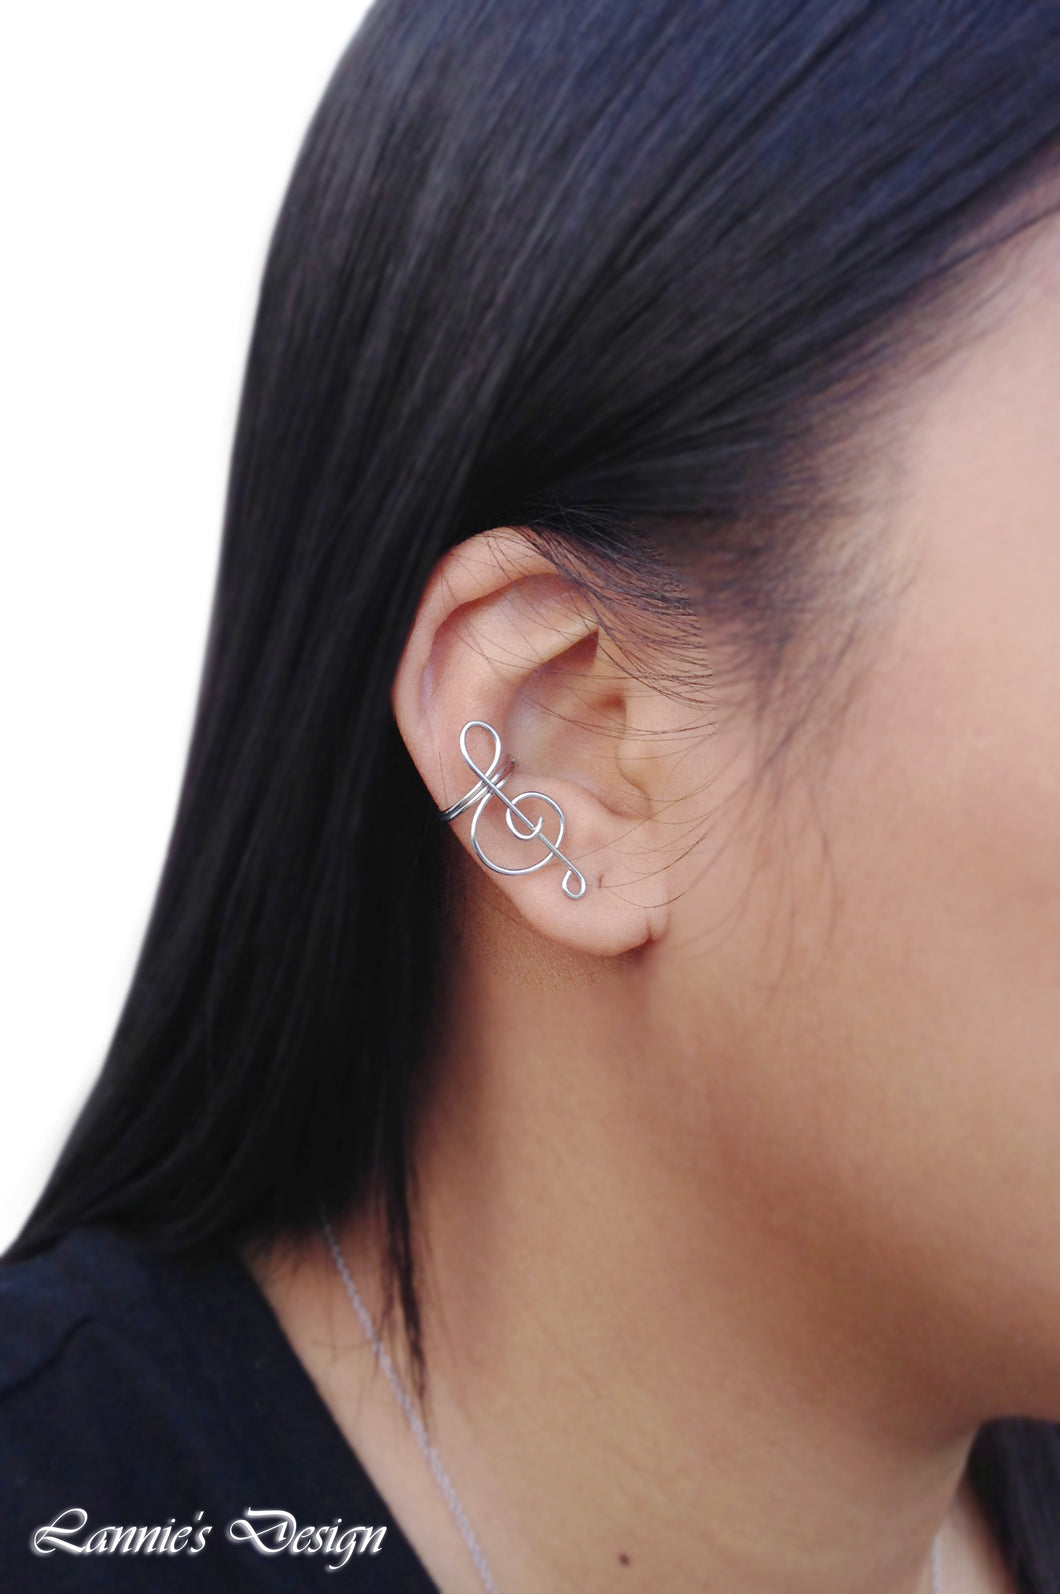 Silver Treble Clef Ear Cuff No Piercing Wire Conch Cartilage Earrings